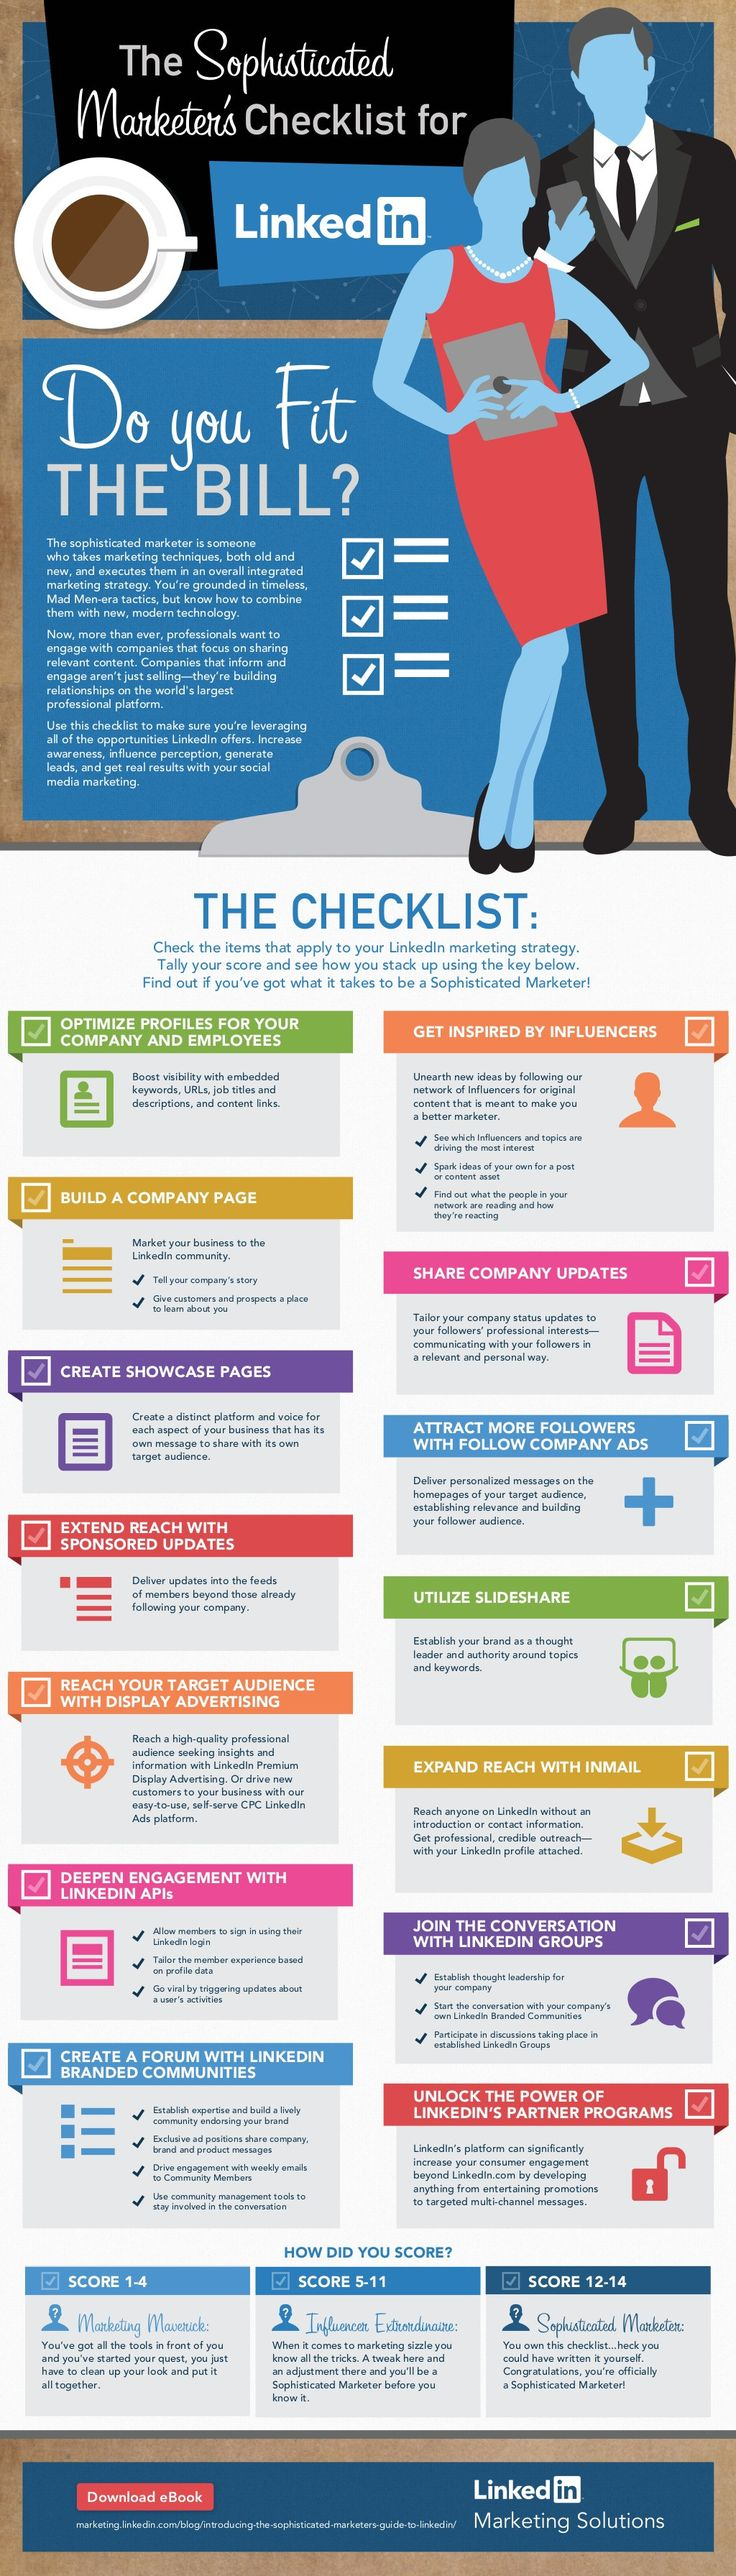 http://www.bigfootdigital.co.uk/services/social-media-marketing/ - Visit our website to find out more about our social media marketing services!   The Sophisticated Marketer's Checklist for #LinkedIn - #socialmediamarketing